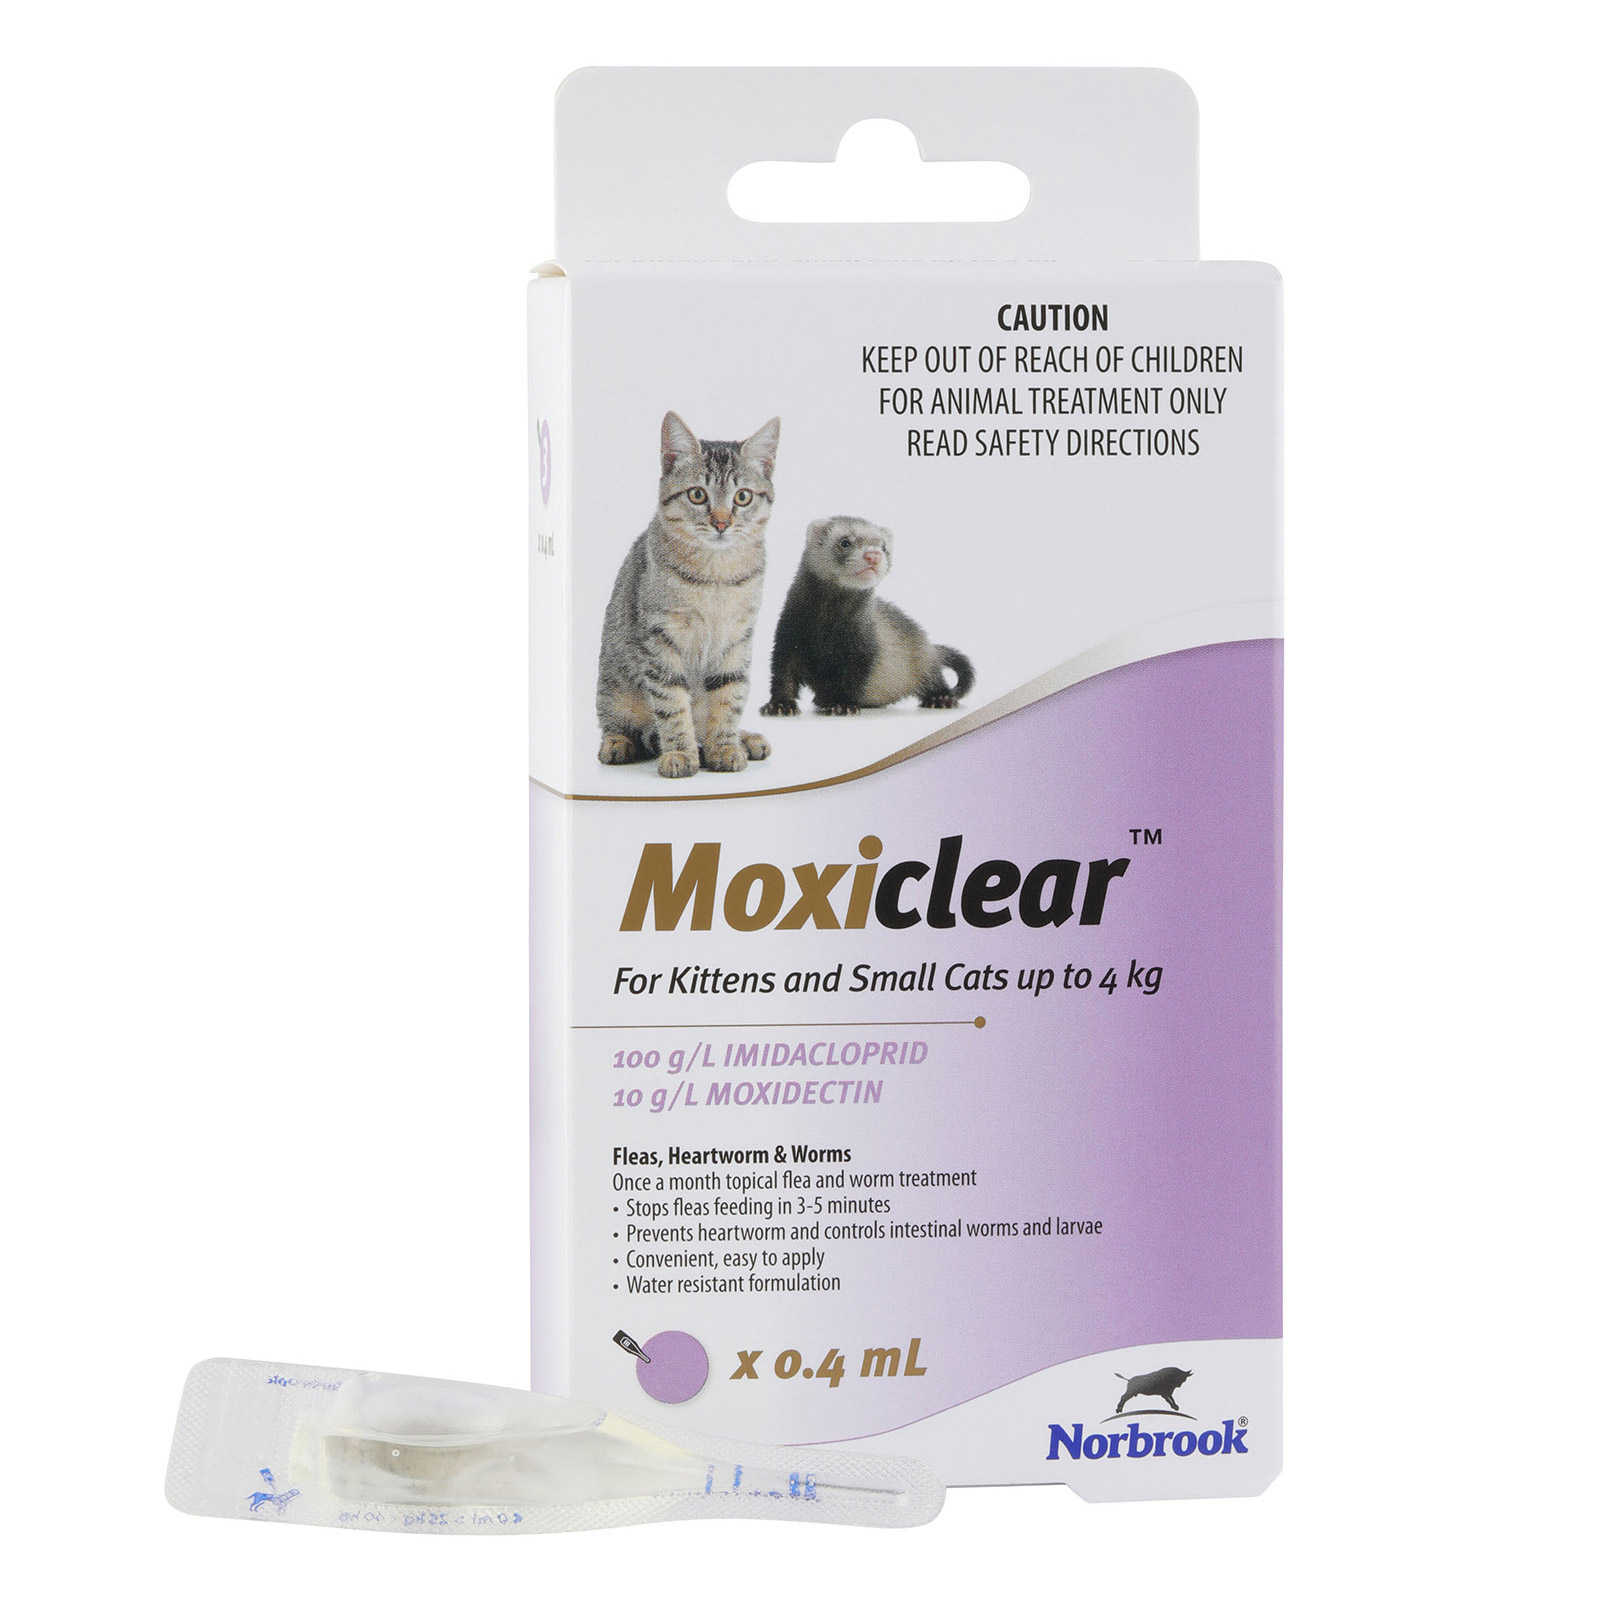 636996886978233695Moxiclear-for-Kittens-and-Small-Cats-up-to-4kg-violet.jpg